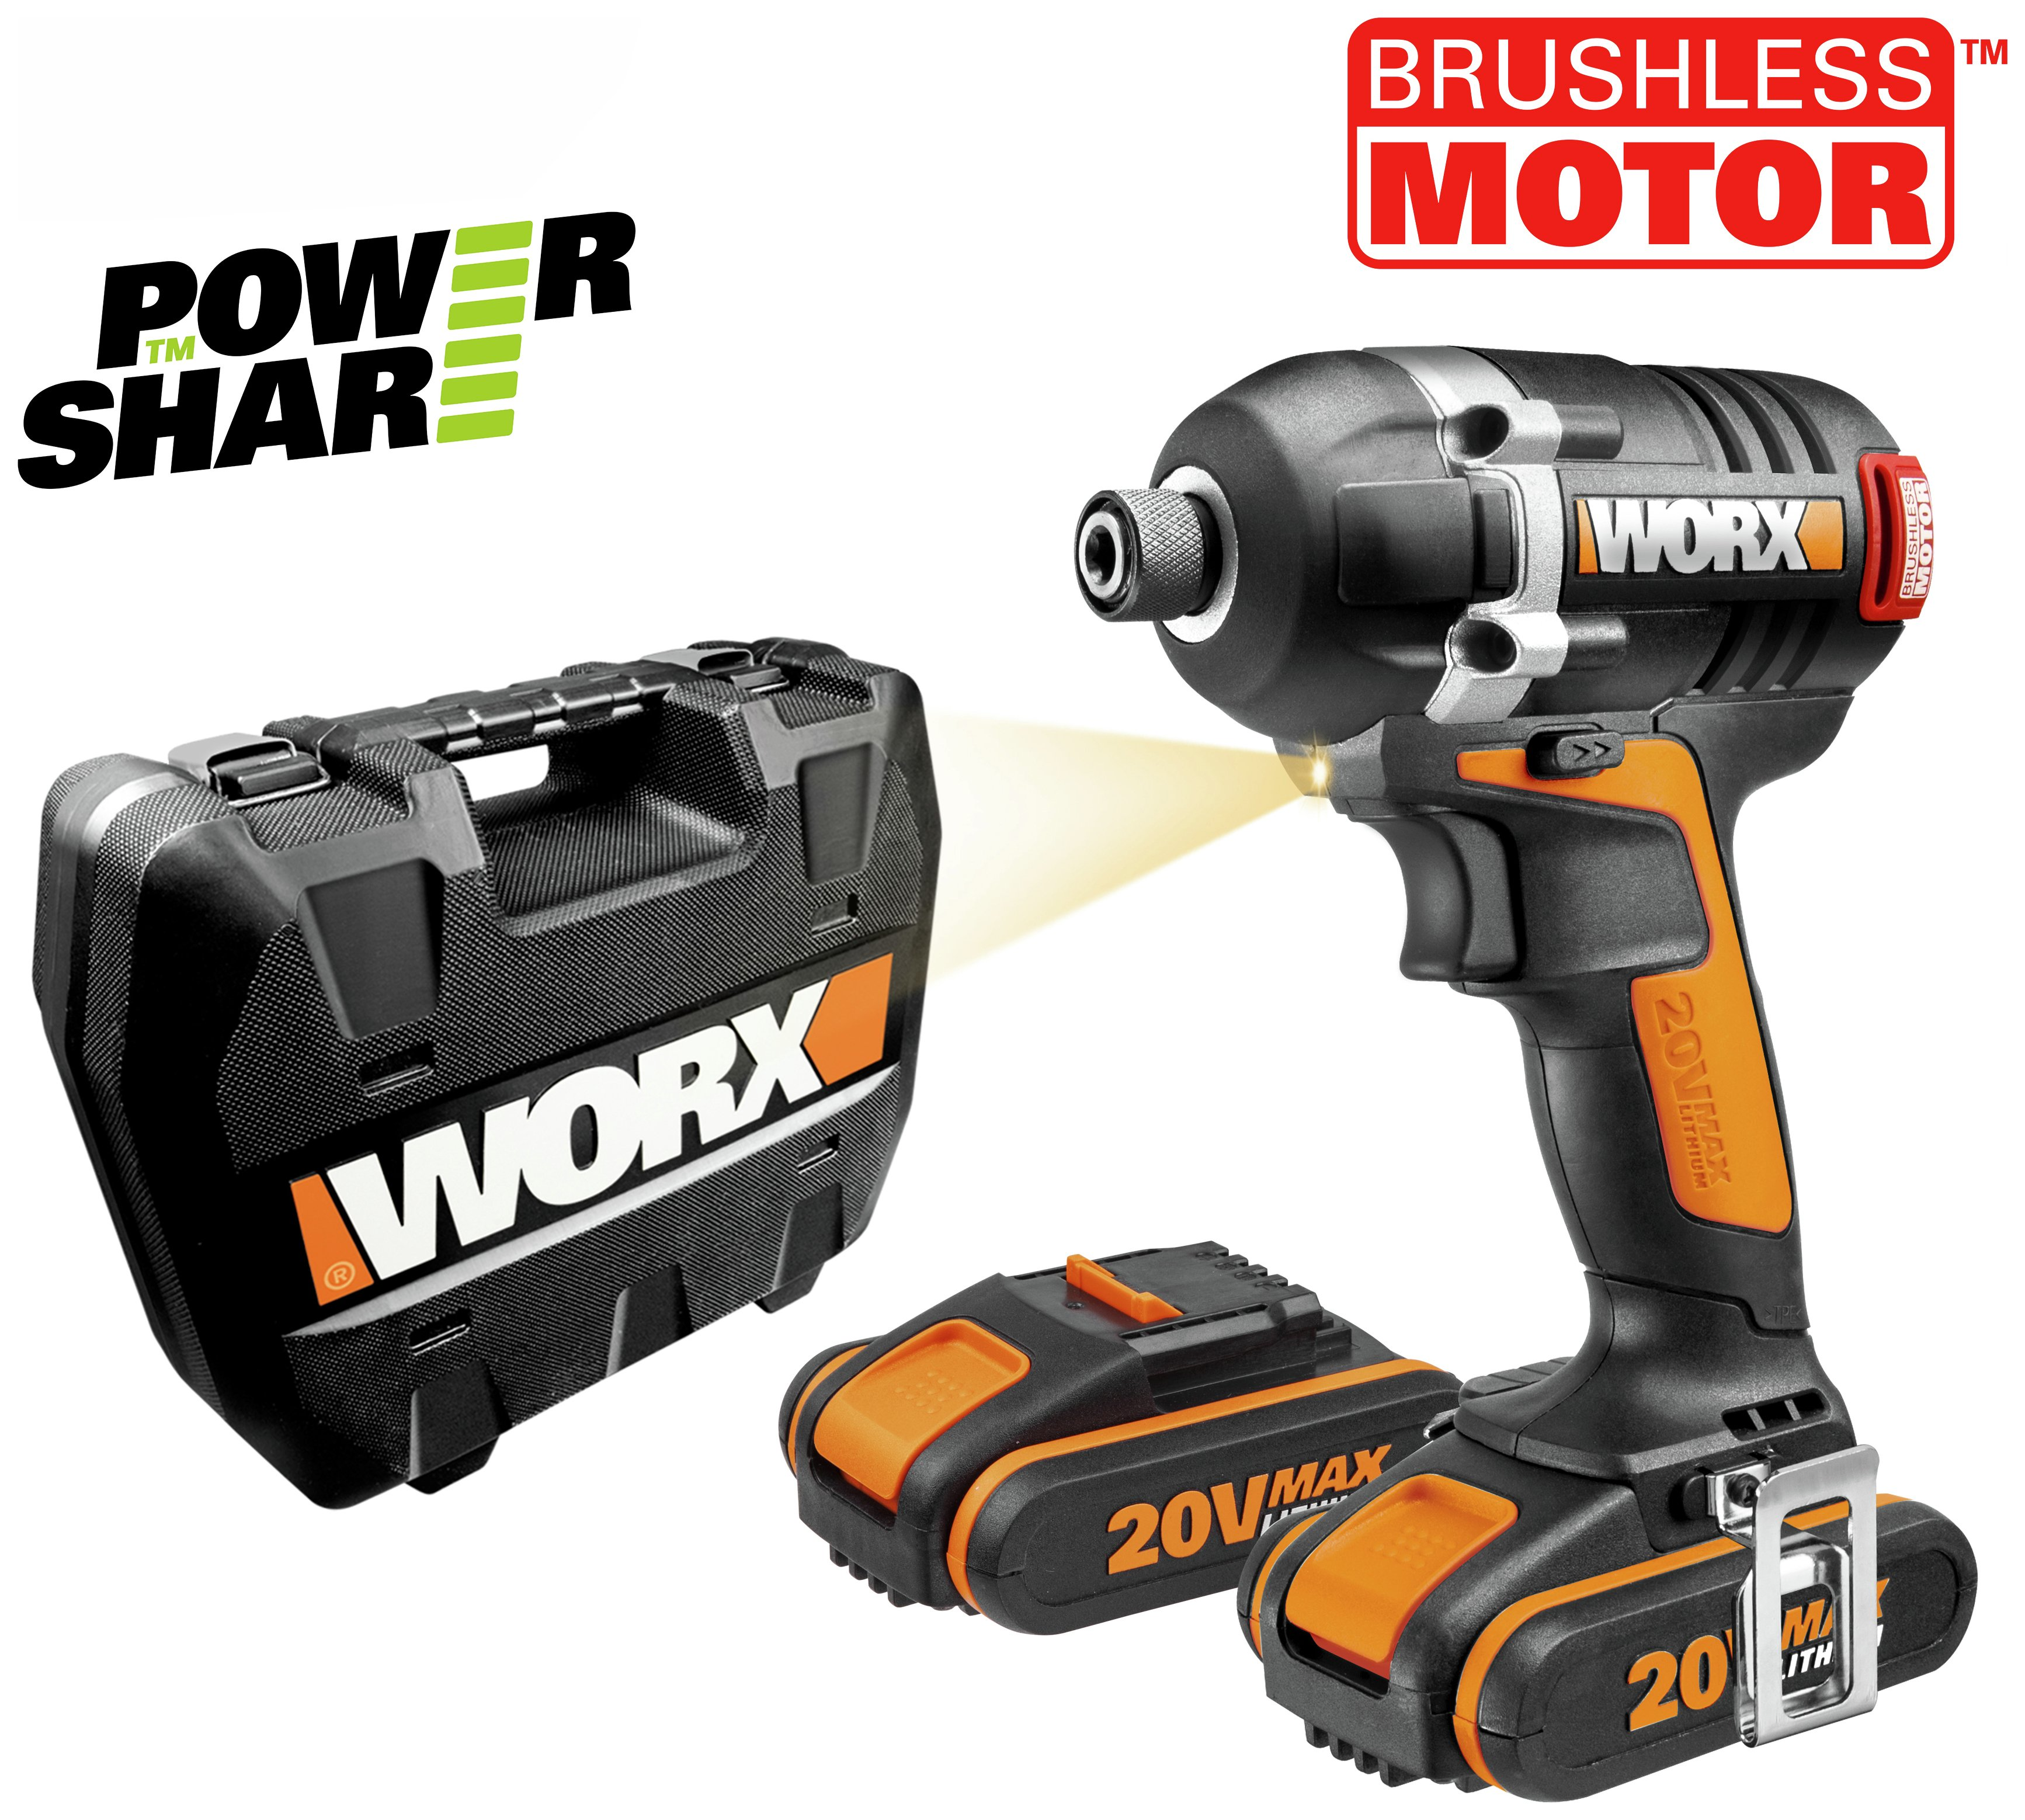 Worx - Brushless Impact Driver with 2 2AH Batteries - 20V lowest price